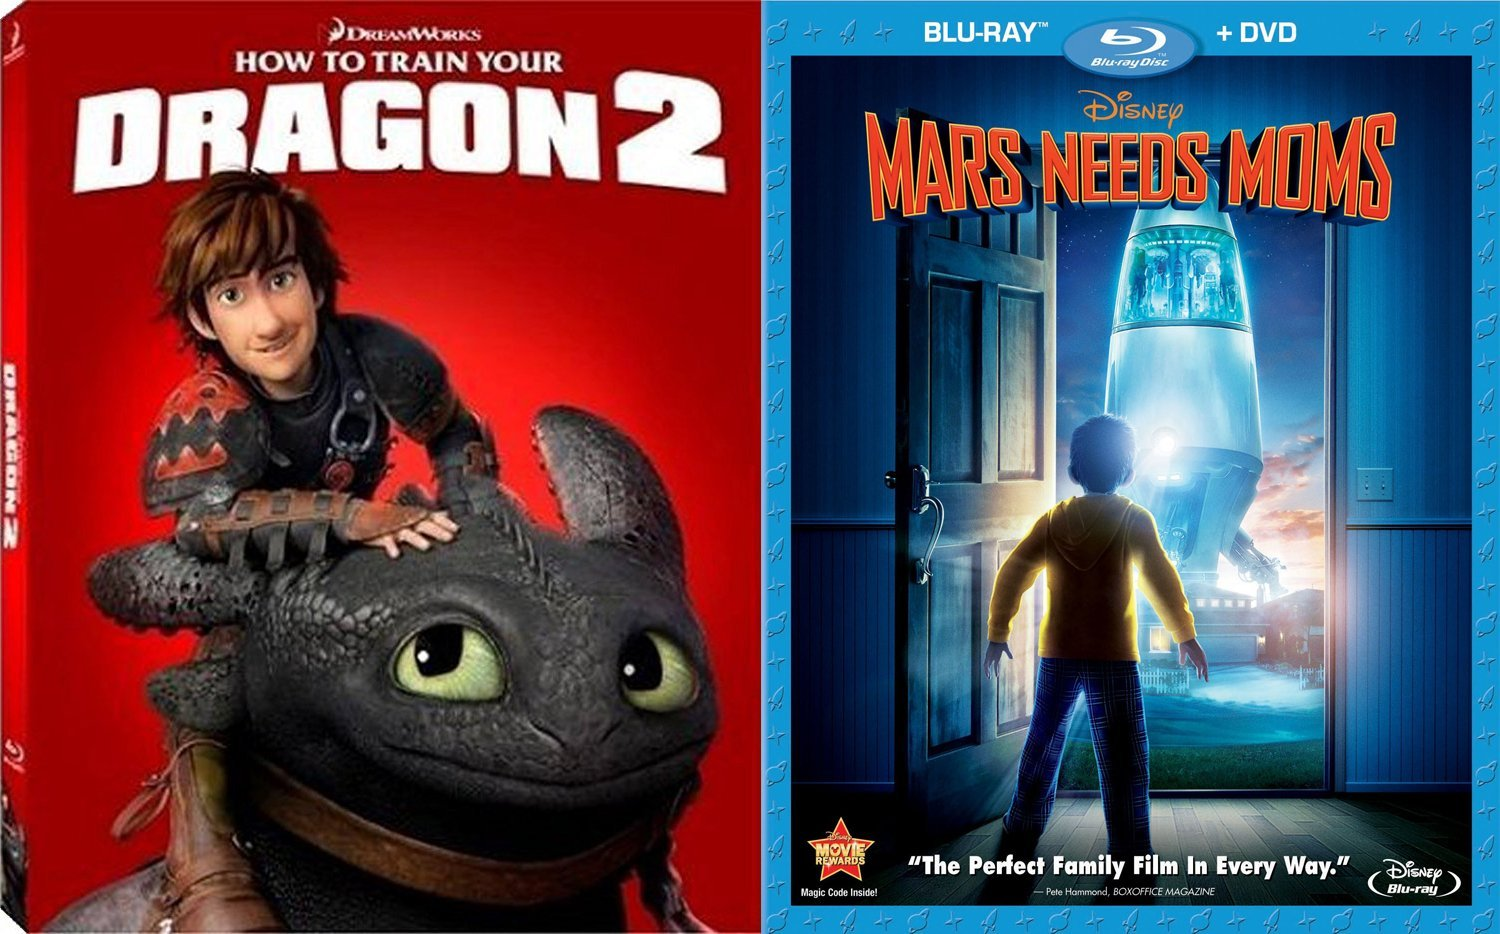 Disney Mars Needs Moms + How to Train your Dragon 2 Blu Ray + DVD Cartoons Double Feature awesome Animated Set by